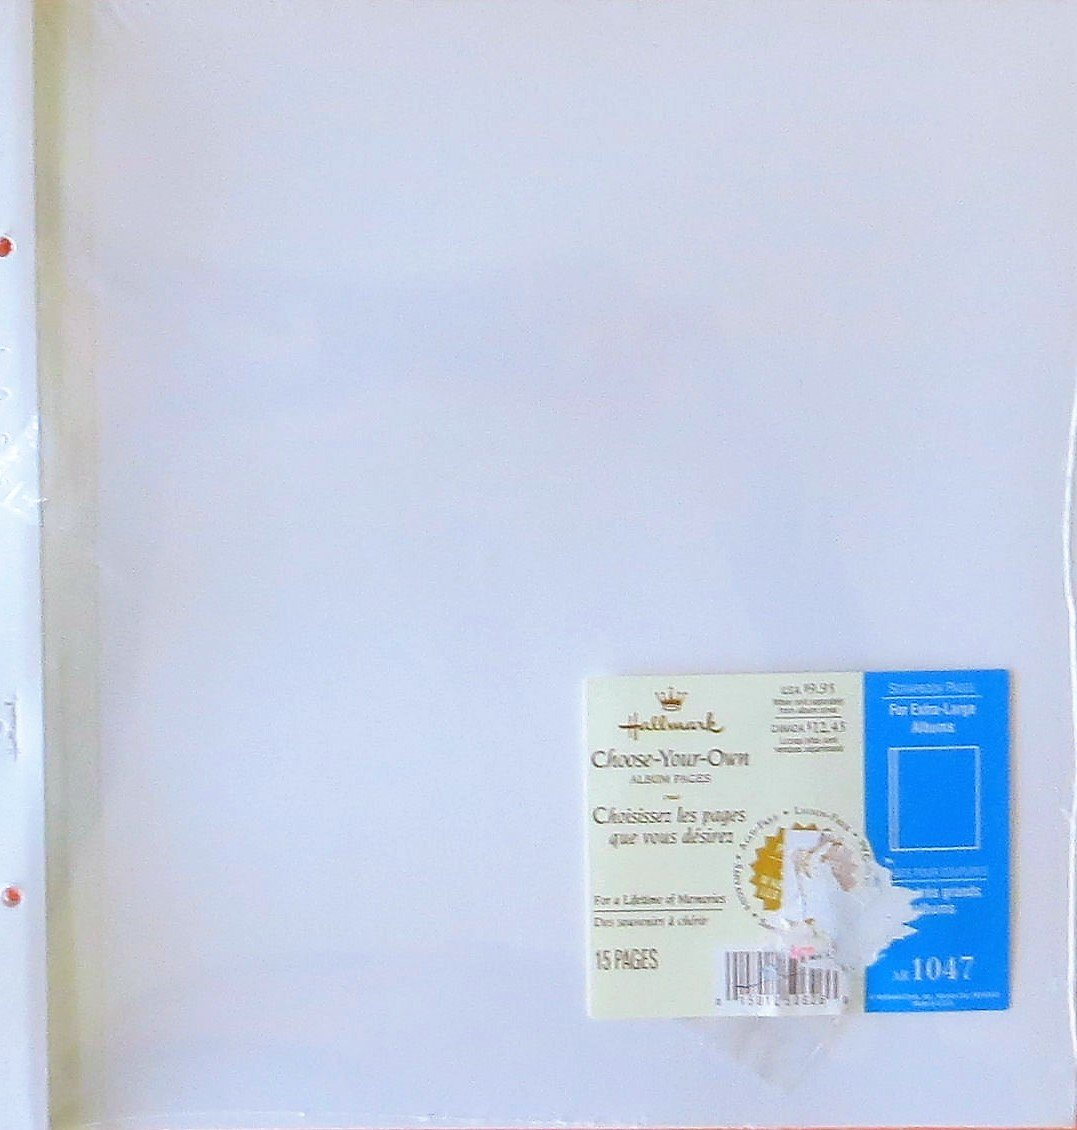 Hallmark AR1047 Refill 15 White Pages for Extra Large Scrapbook Album